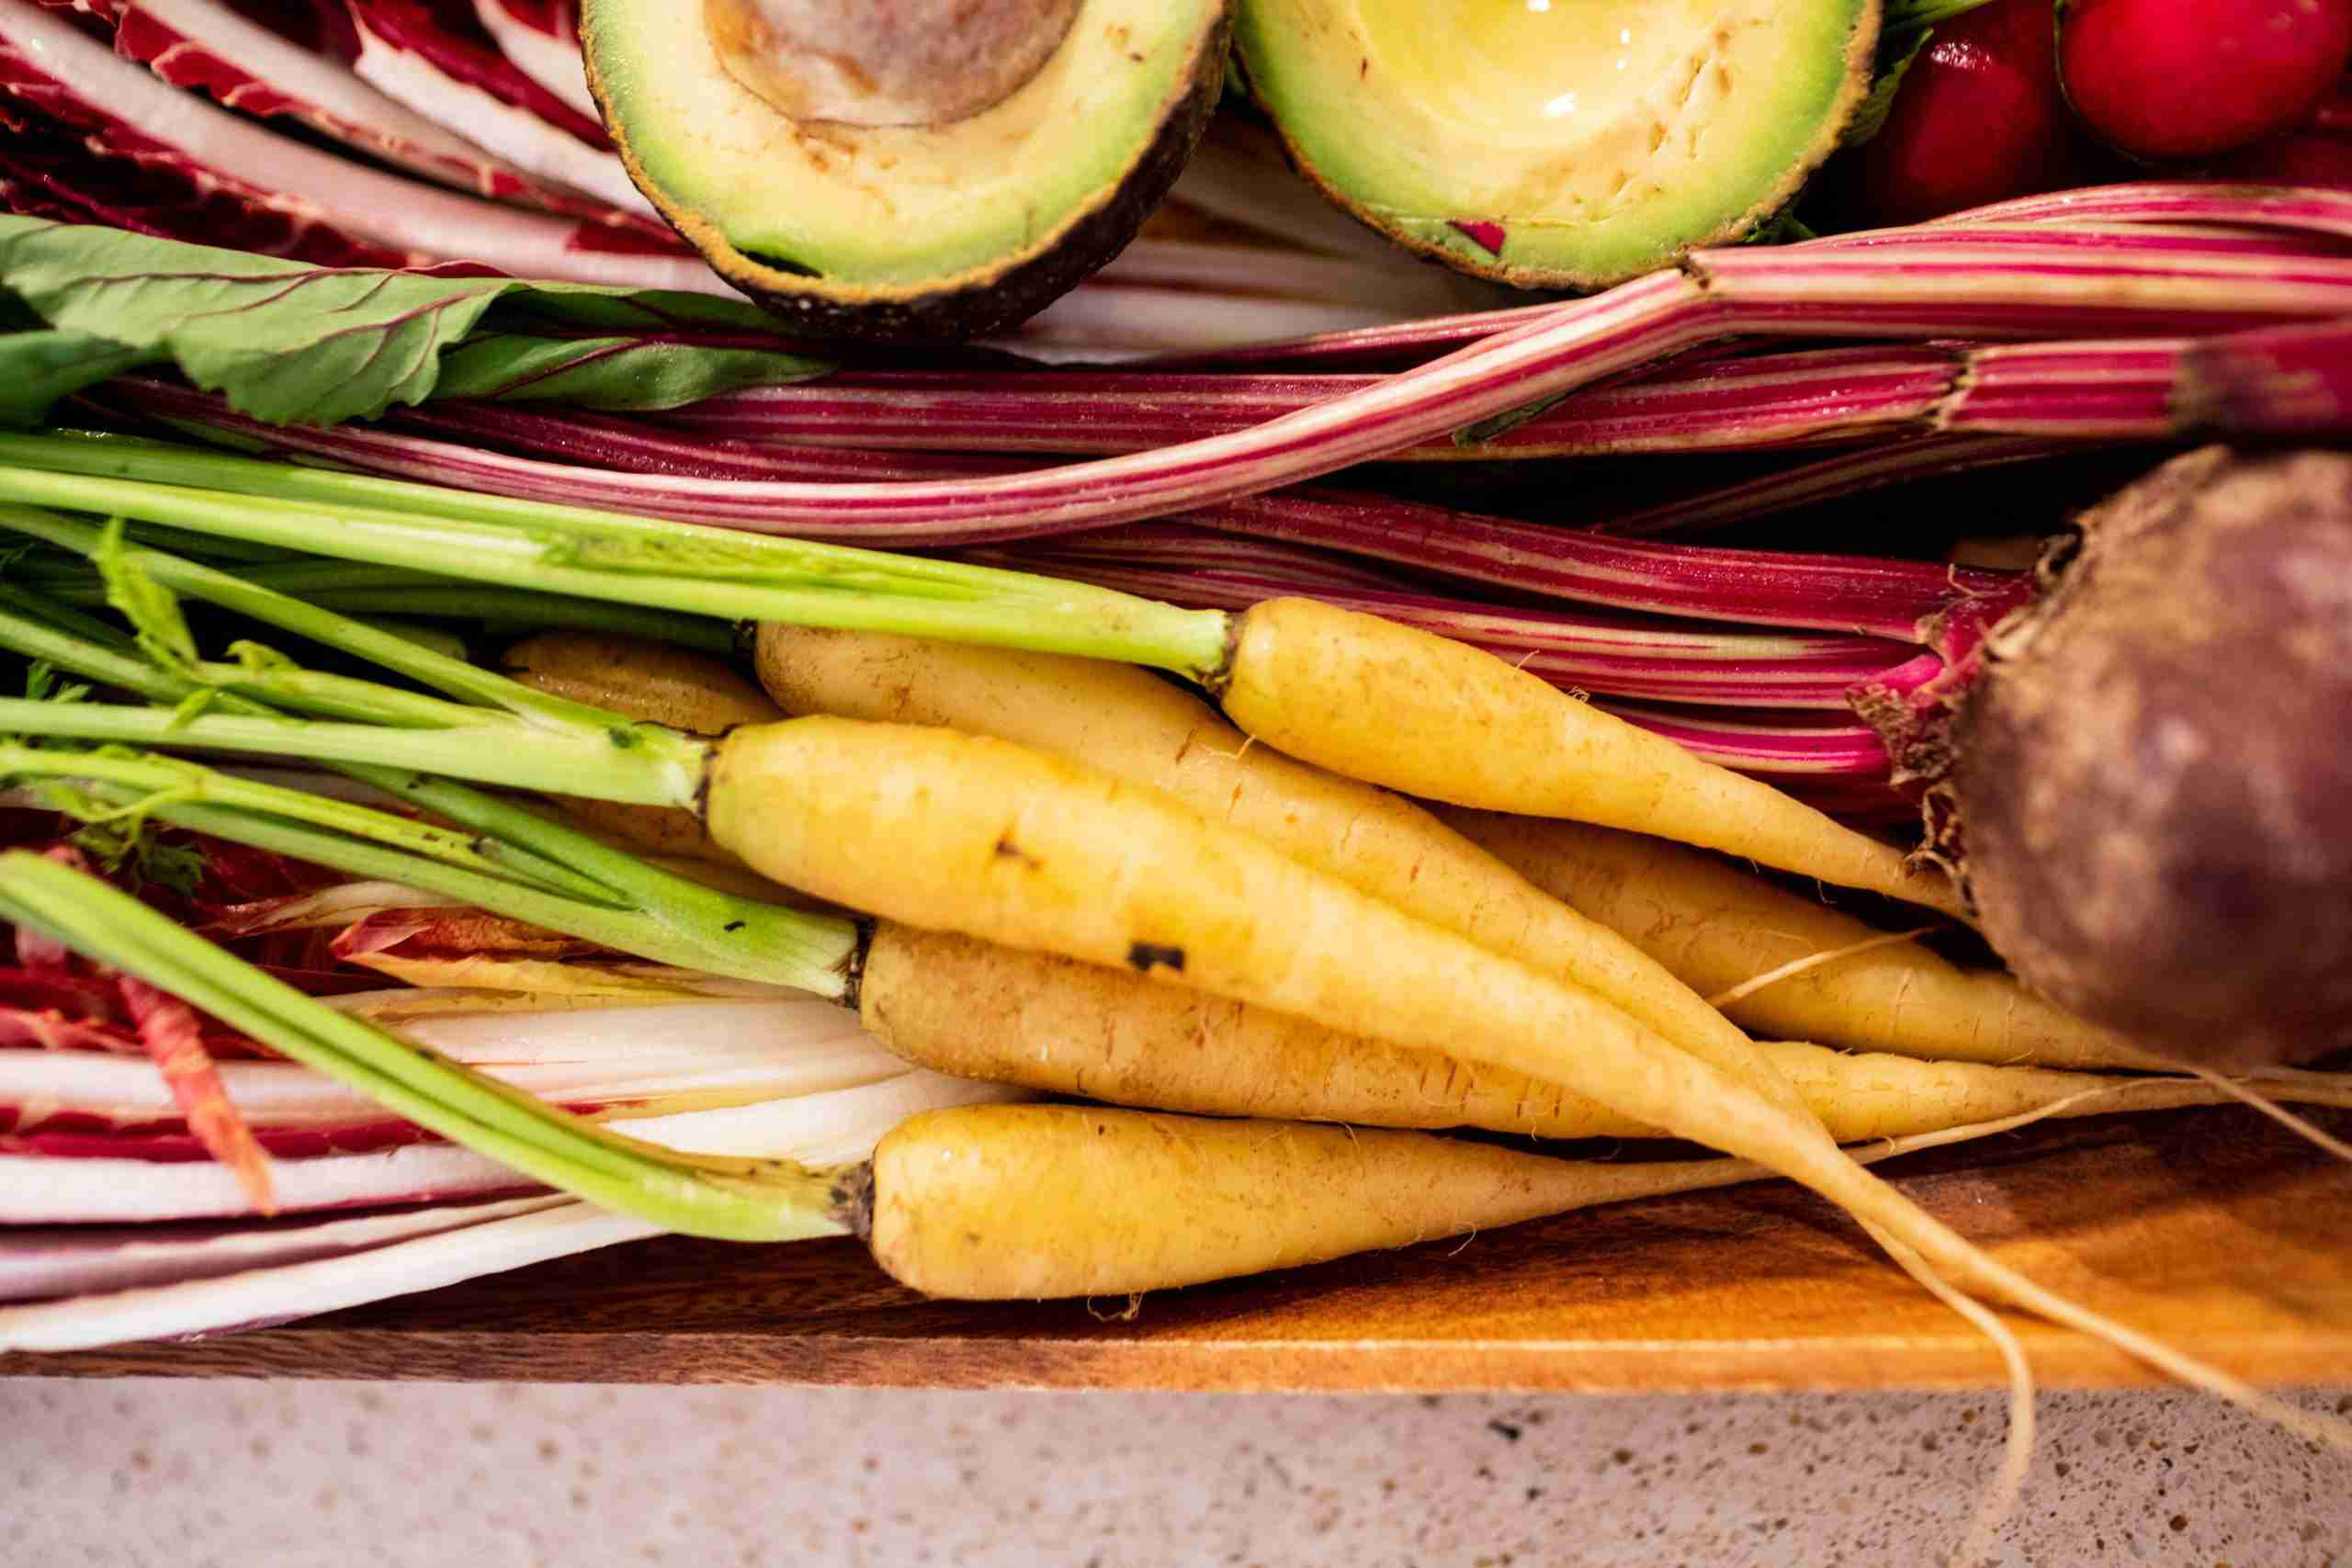 Wood bowl filled with orange carrots, red beets, radishes and an avocado.